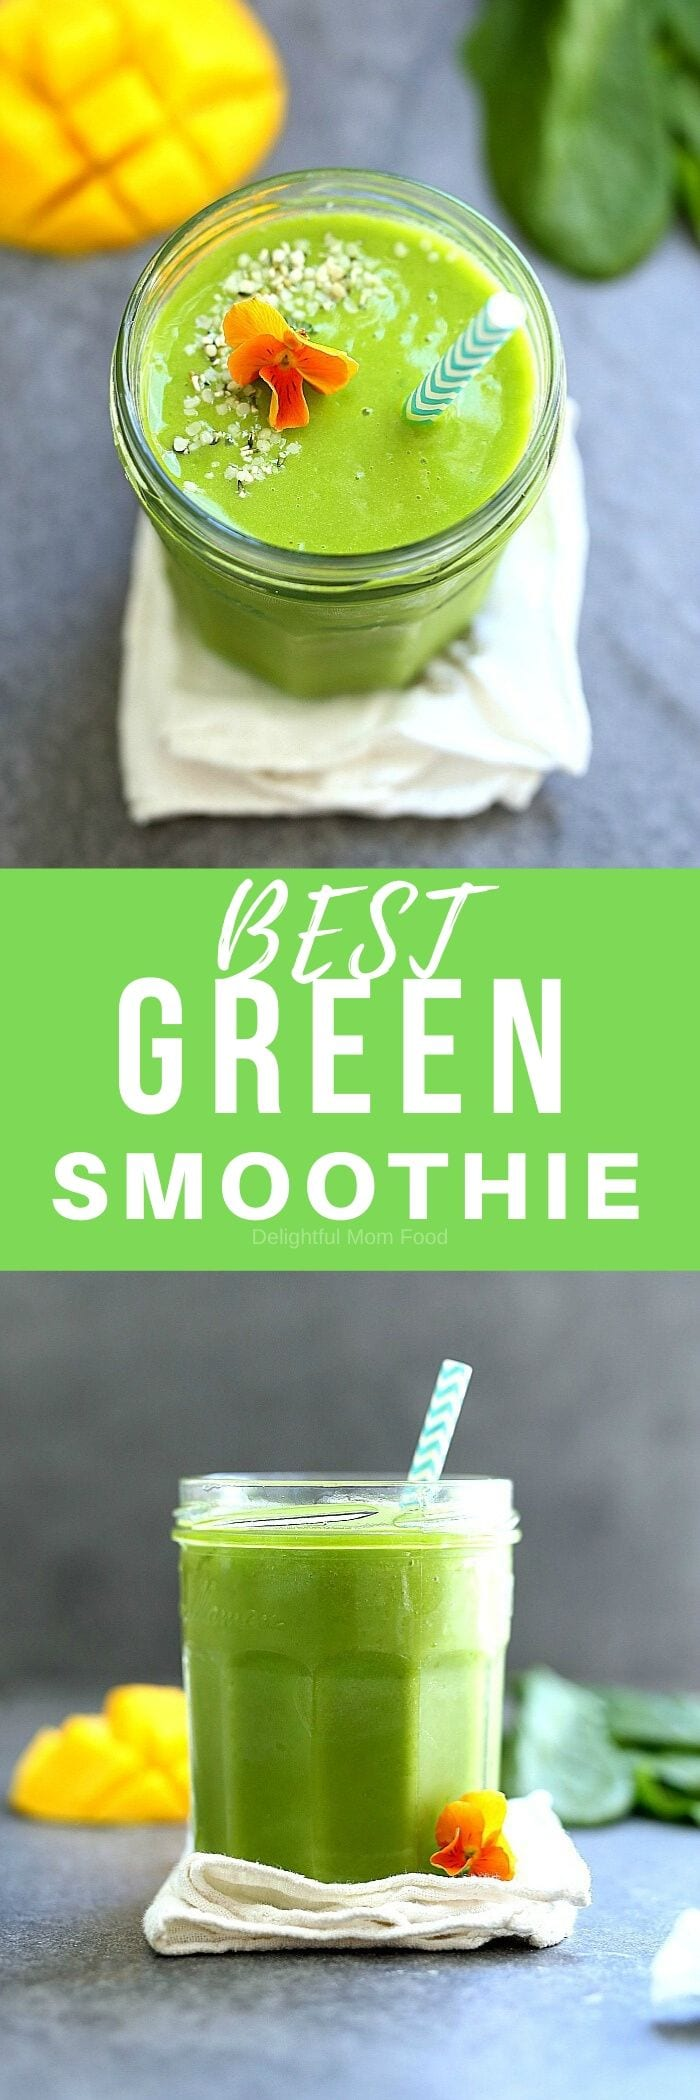 The BEST Green Smoothie Recipe! A healthy and easy green smoothie made with spinach, parsley, mango and pineapple. This green smoothie recipe can be turned into a smoothie bowl too. It hydrates, energizes, is delicious and has the option for adding supplements for more nutrition! #greensmoothierecipe #drink #beverage #smoothie #breakfast #healthy #easy #best #green #smoothie #glutenfree #vegan #mango #spinach | Delightful Mom Food